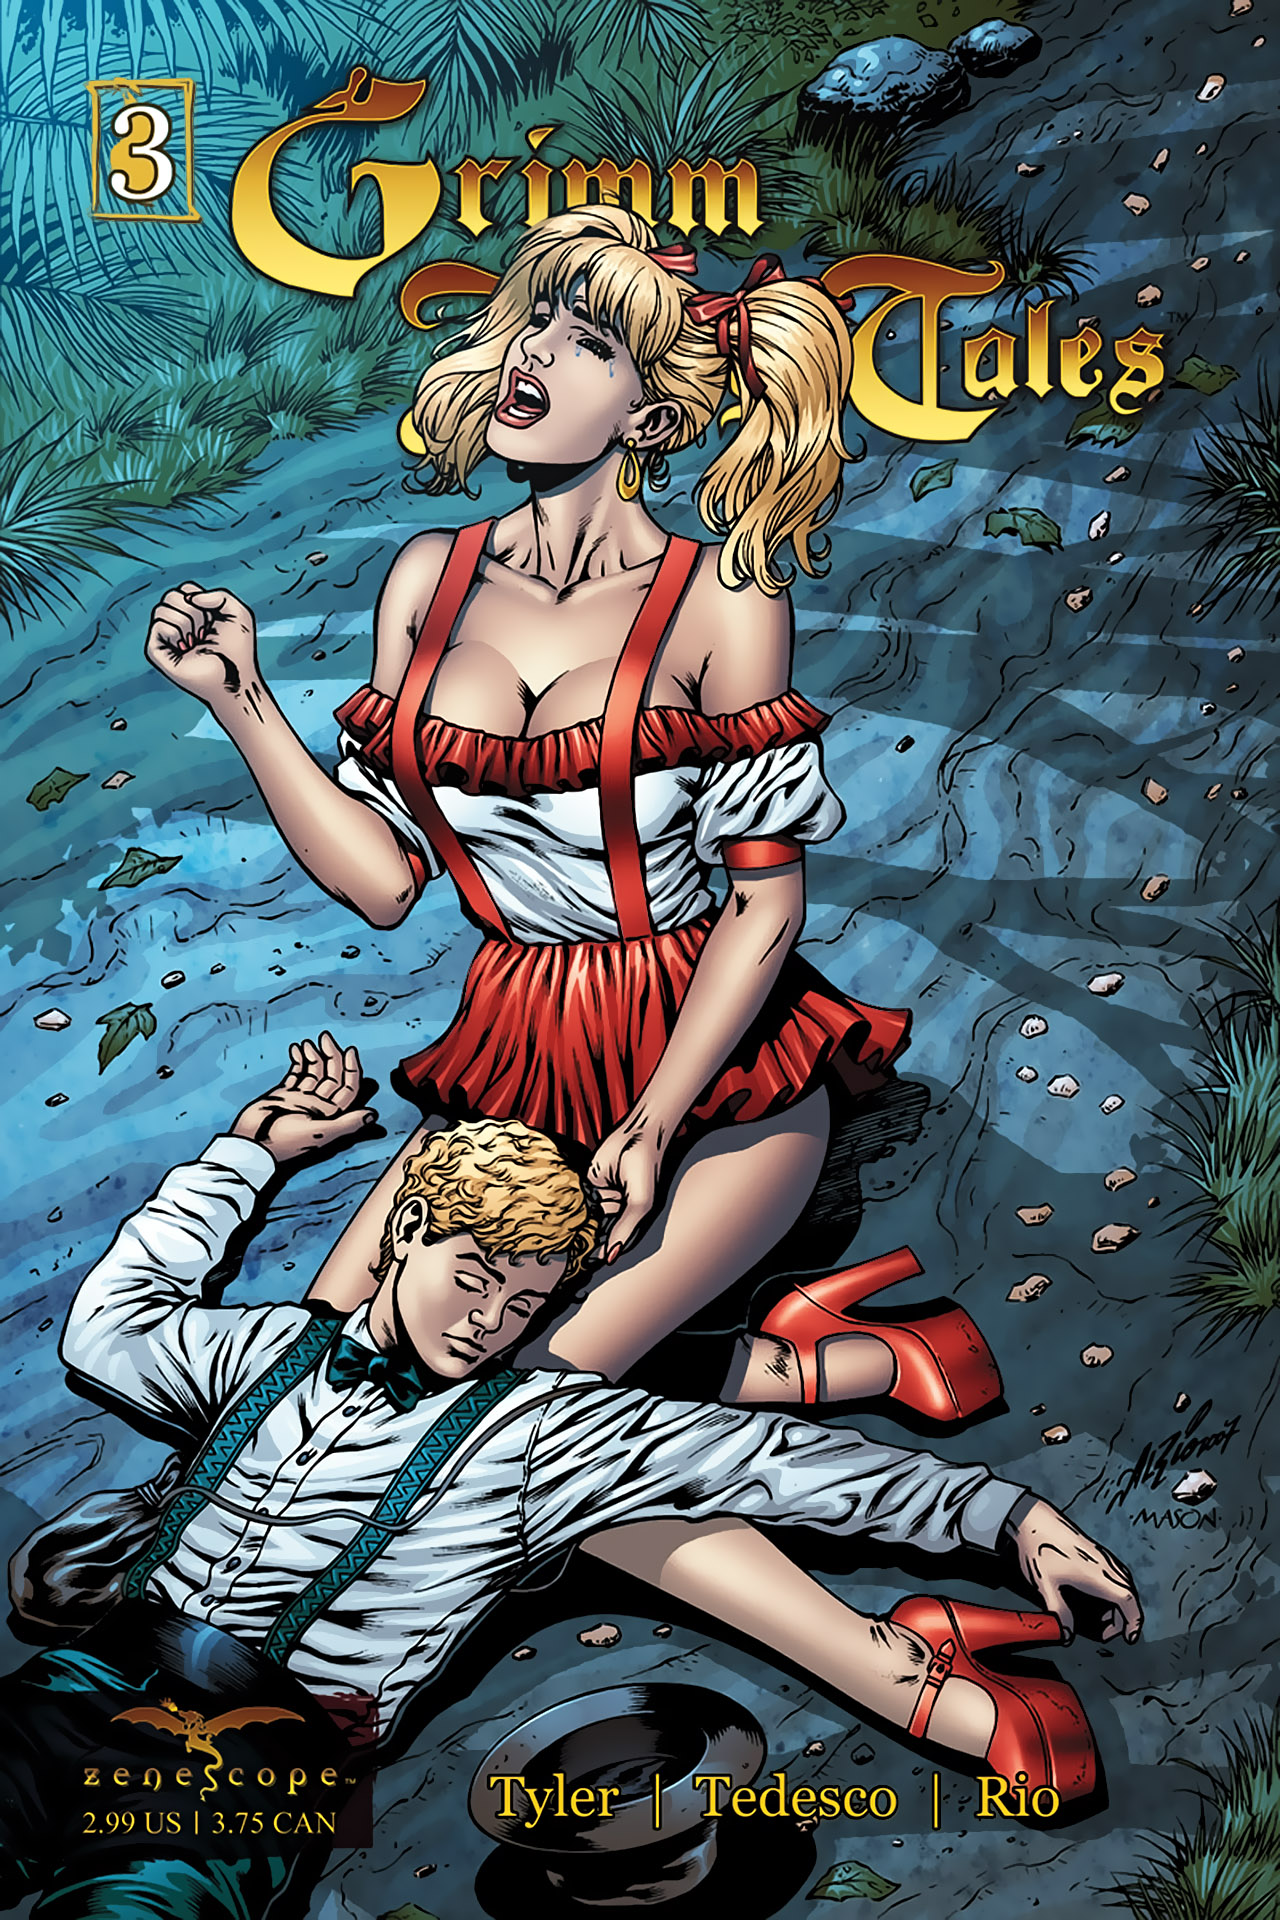 Grimm Fairy Tales (2005) Issue #3 #6 - English 1